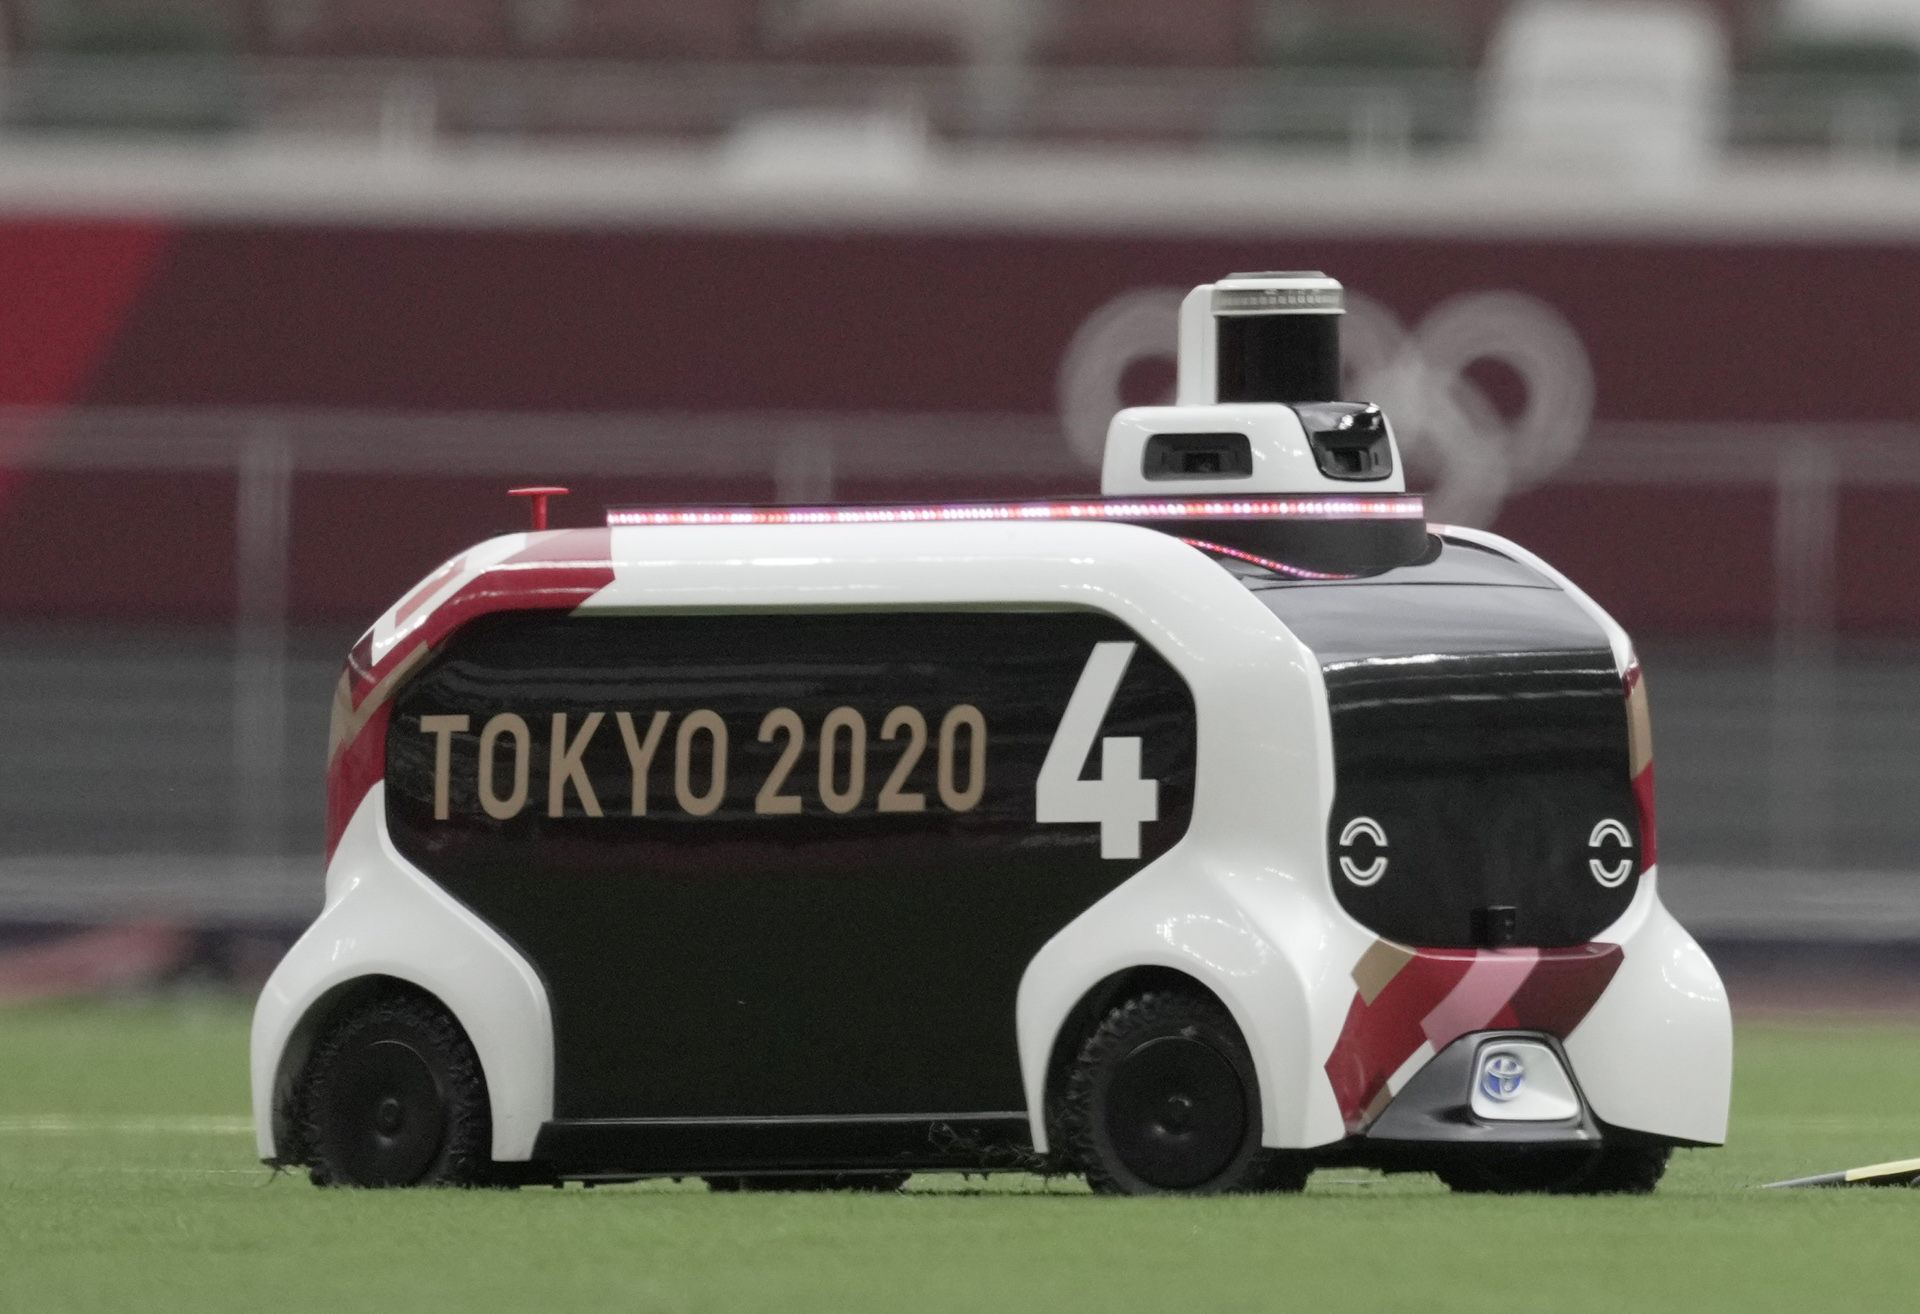 Mystery solved: What are those little robot cars driving around the Olympic track and field stadium?